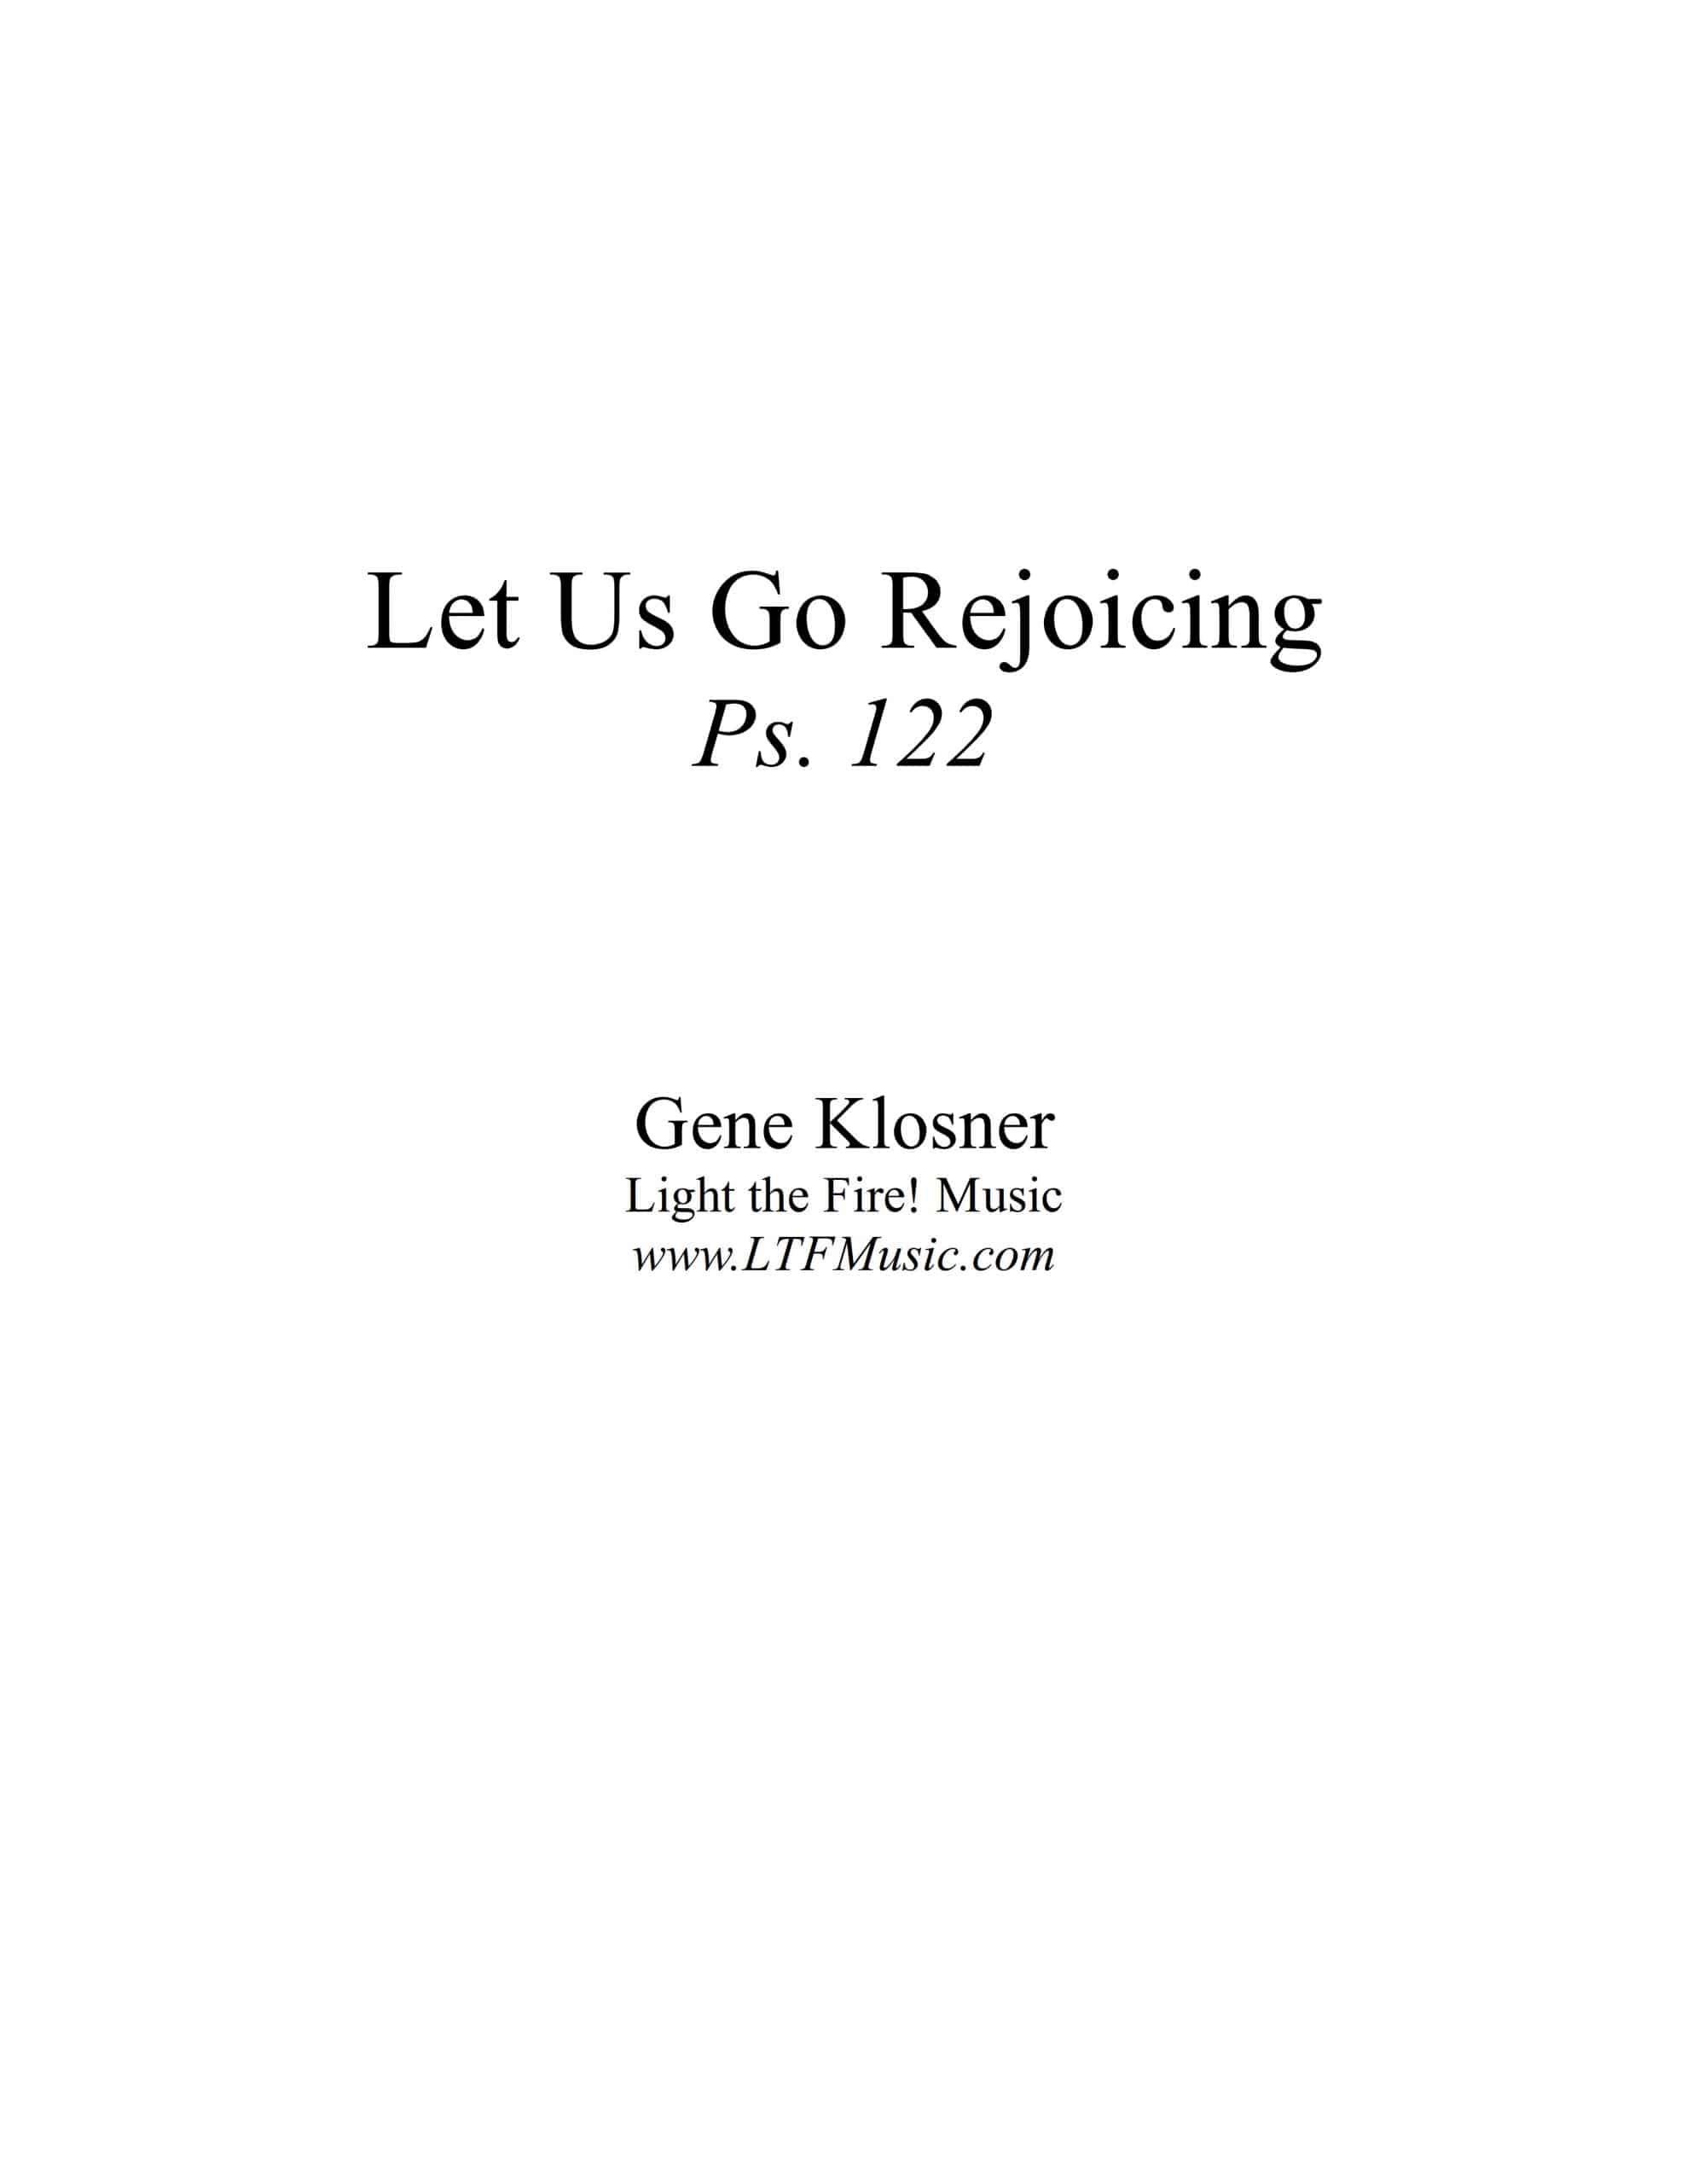 Let Us Go Rejoicing Sample CompletePDF scaled